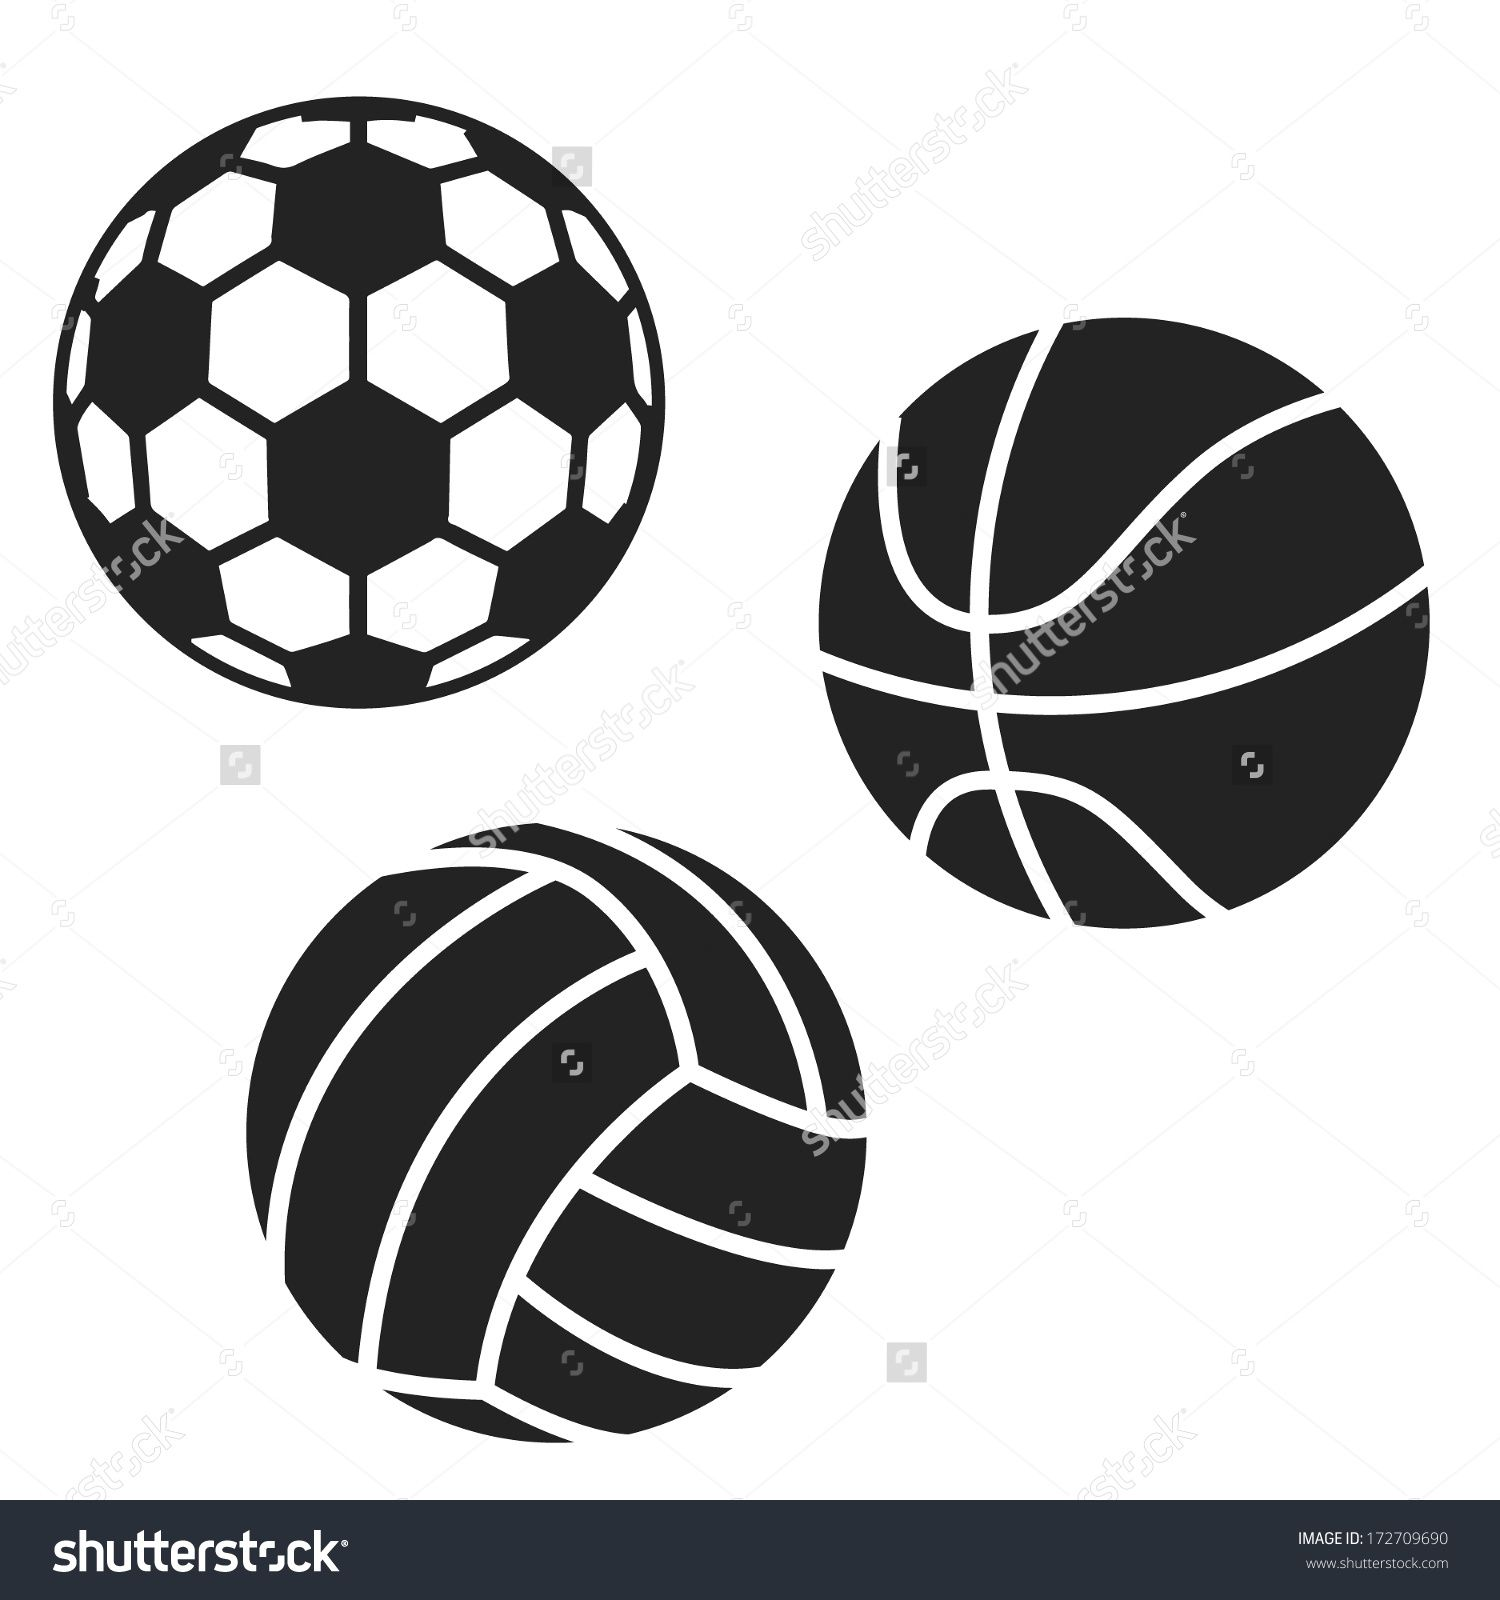 Sport Balls Black White Icons Football Stock Vector 172709690 Sports Balls Icon Black And White